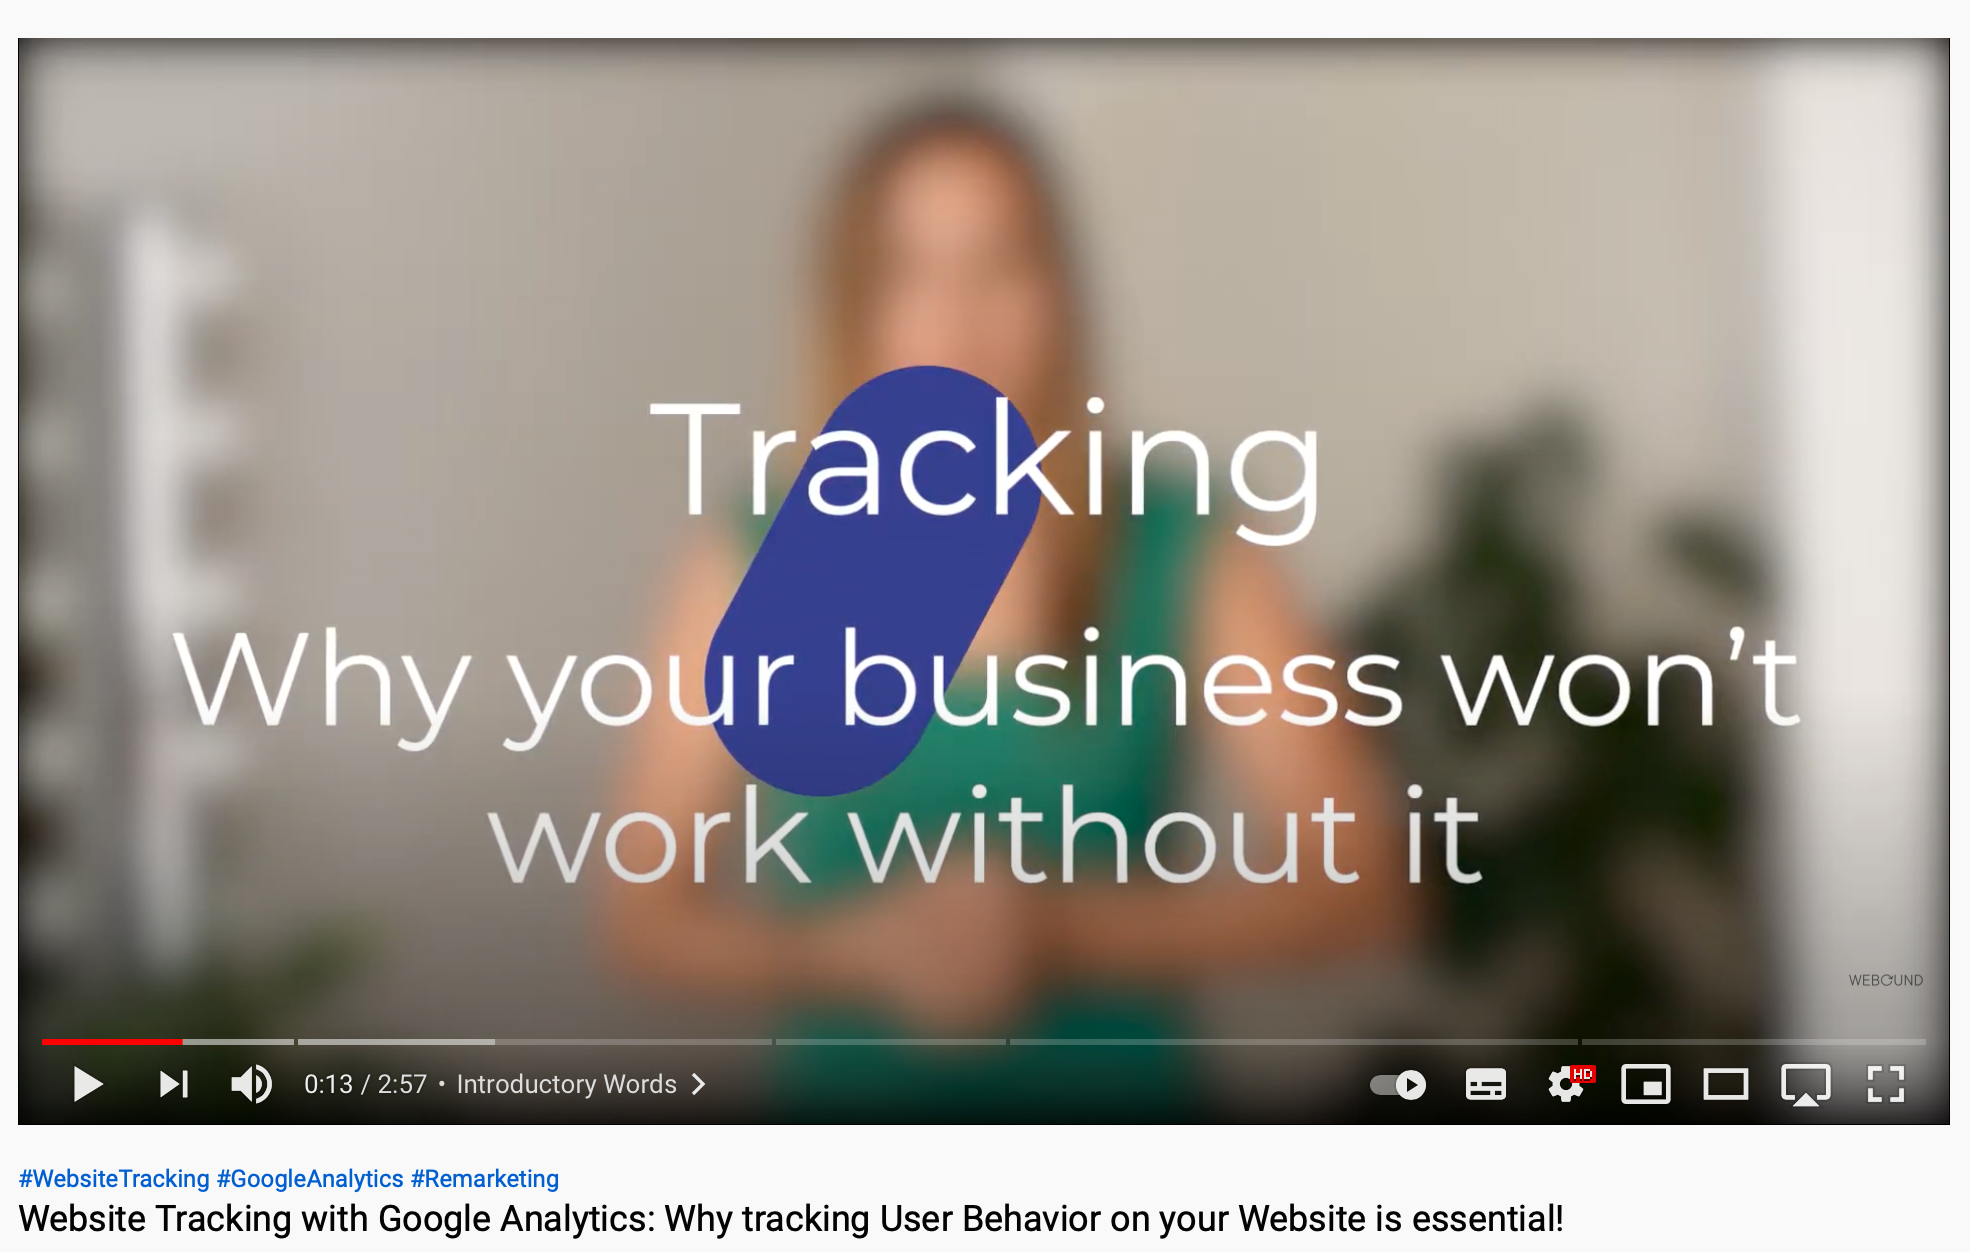 Tracking - Why your business won't work without it